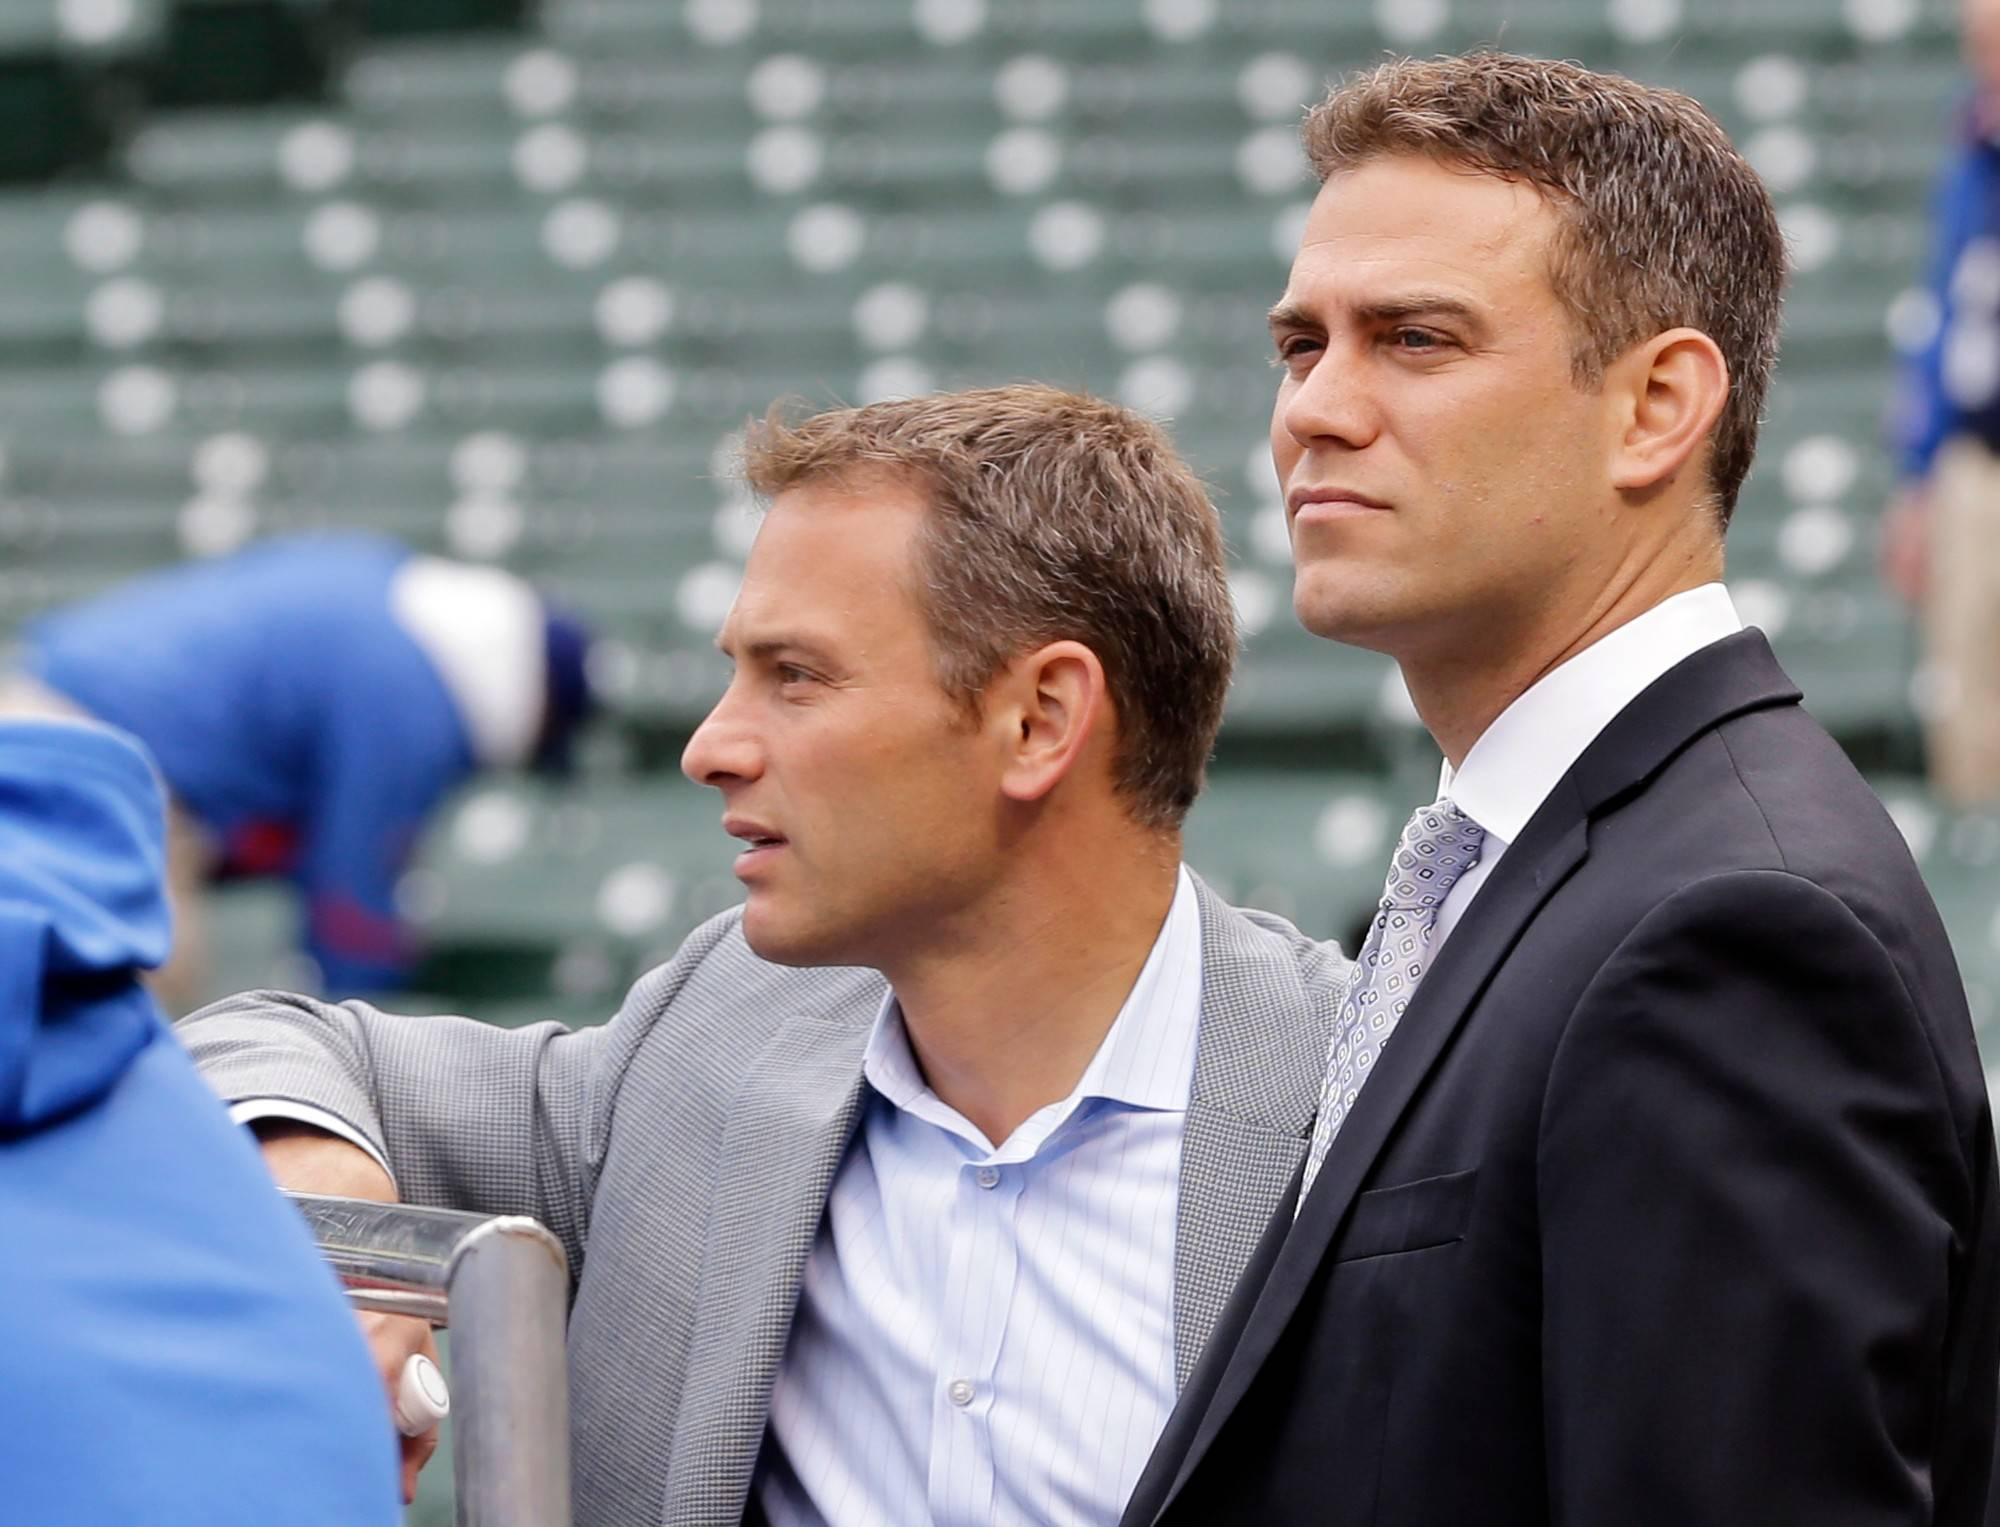 With trade, Cubs' Epstein sees light at end of tunnel